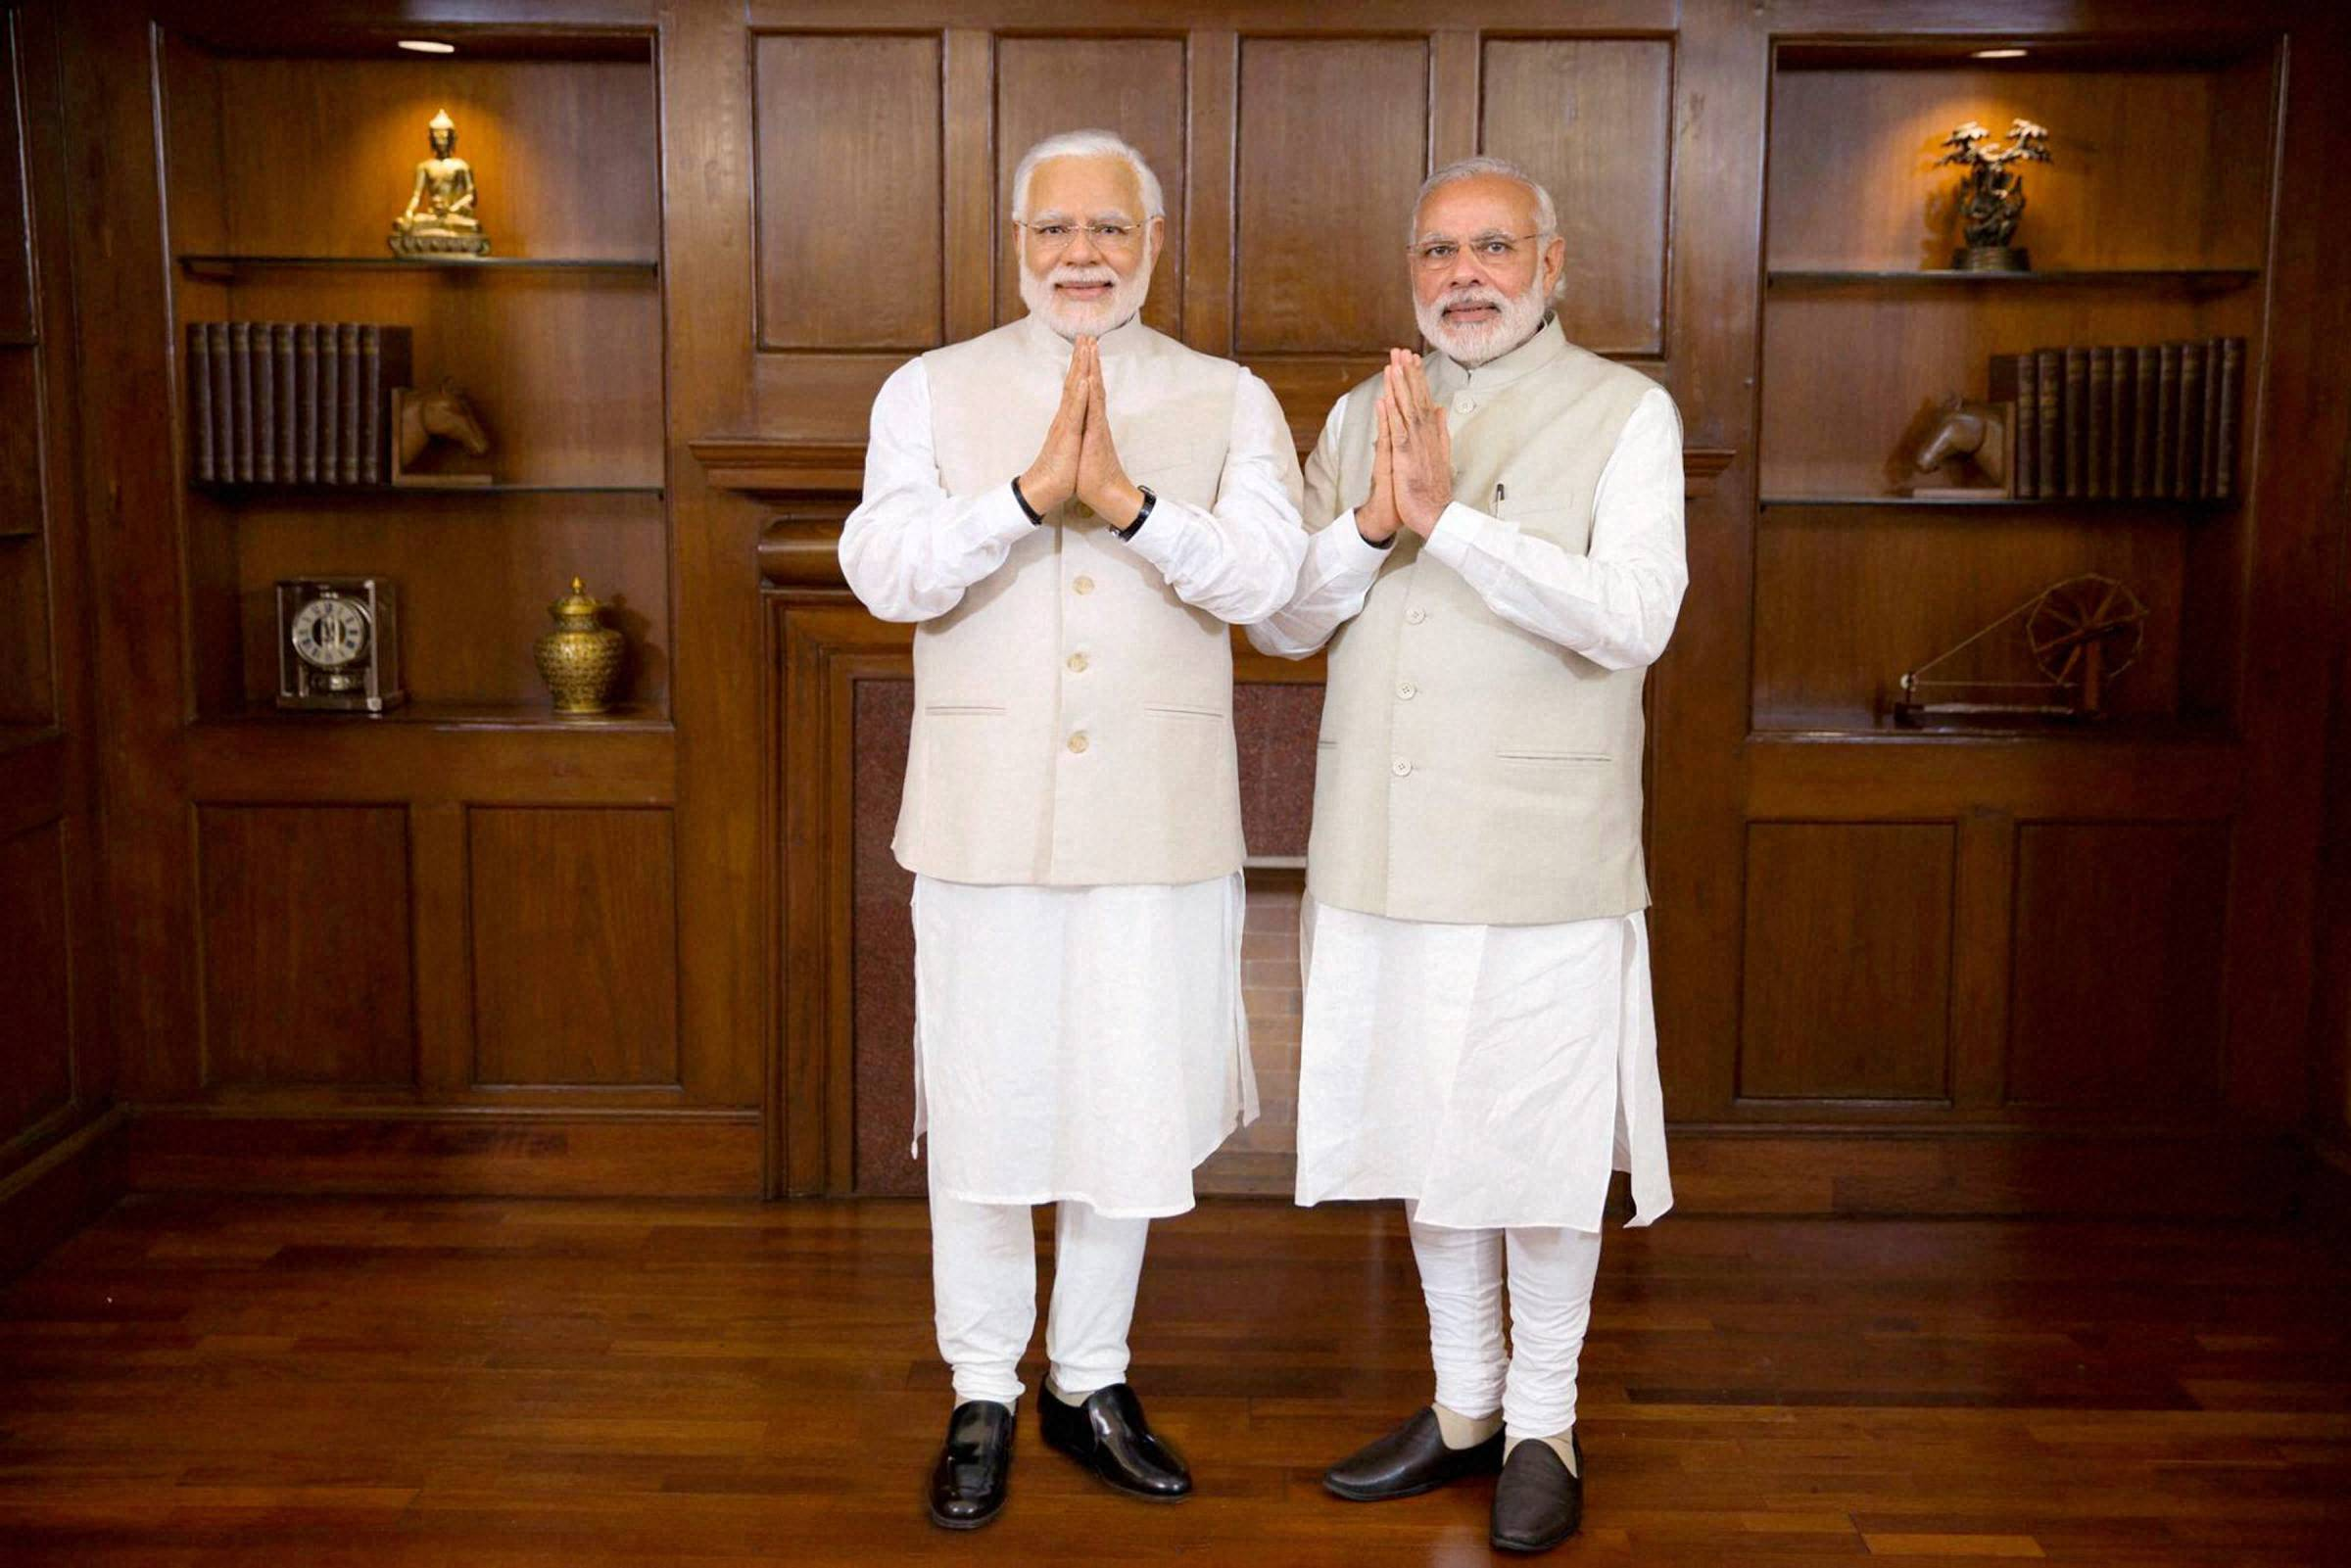 New Delhi: Prime Minster Narendra Modi poses with his wax statue due to be placed at London's Madame Tussauds museum, in New Delhi. Three of his wax statues have been installed in Singapore, Hong Kong and Bangkok and one of them will be put up in London in the next eight days. PTI Photo / Madame Tussauds(PTI4_20_2016_000174B)